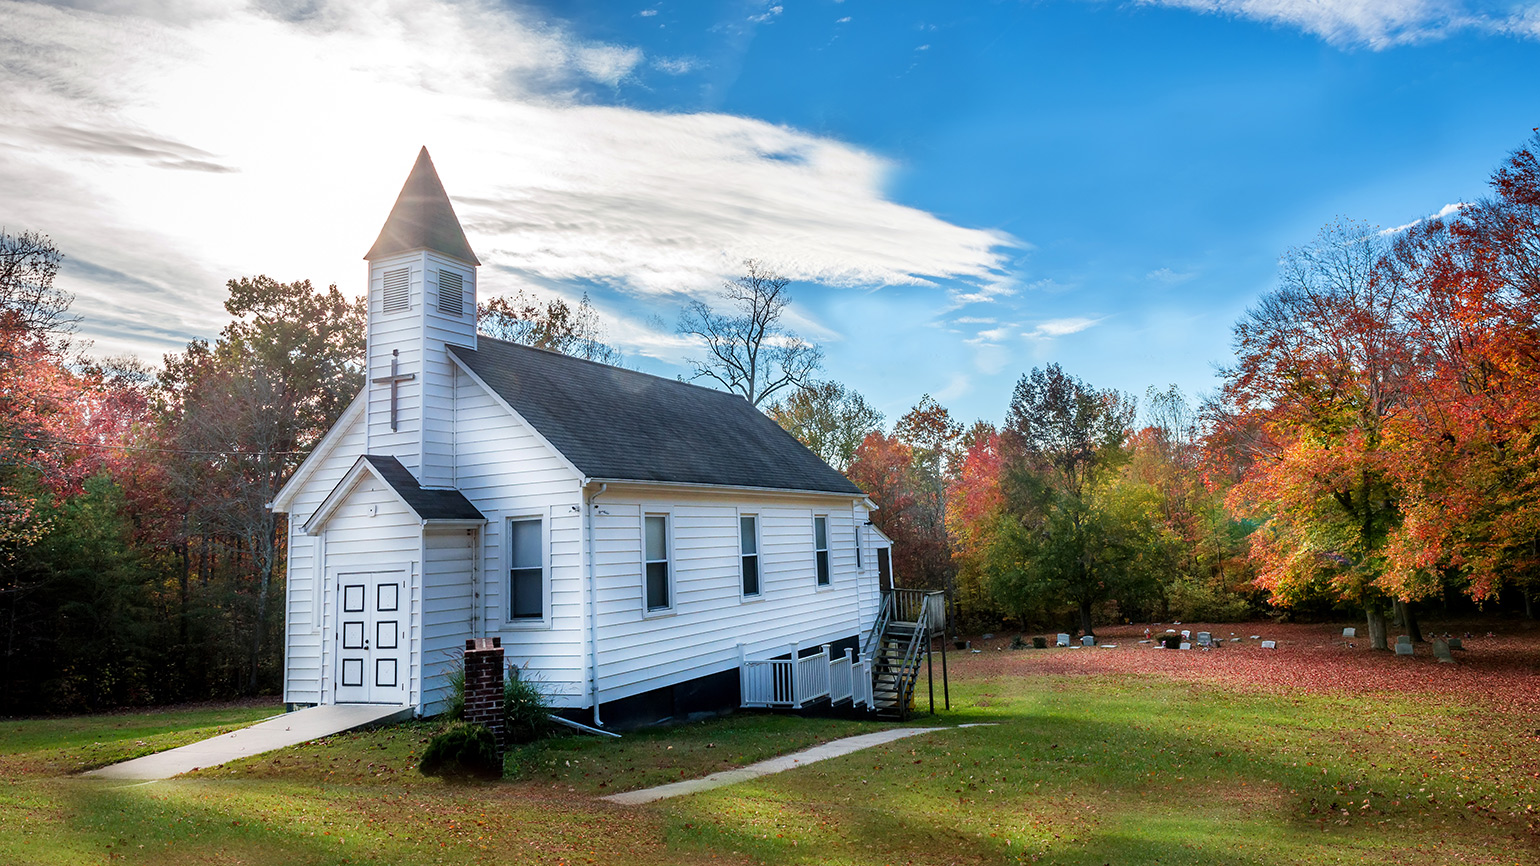 A church in the country